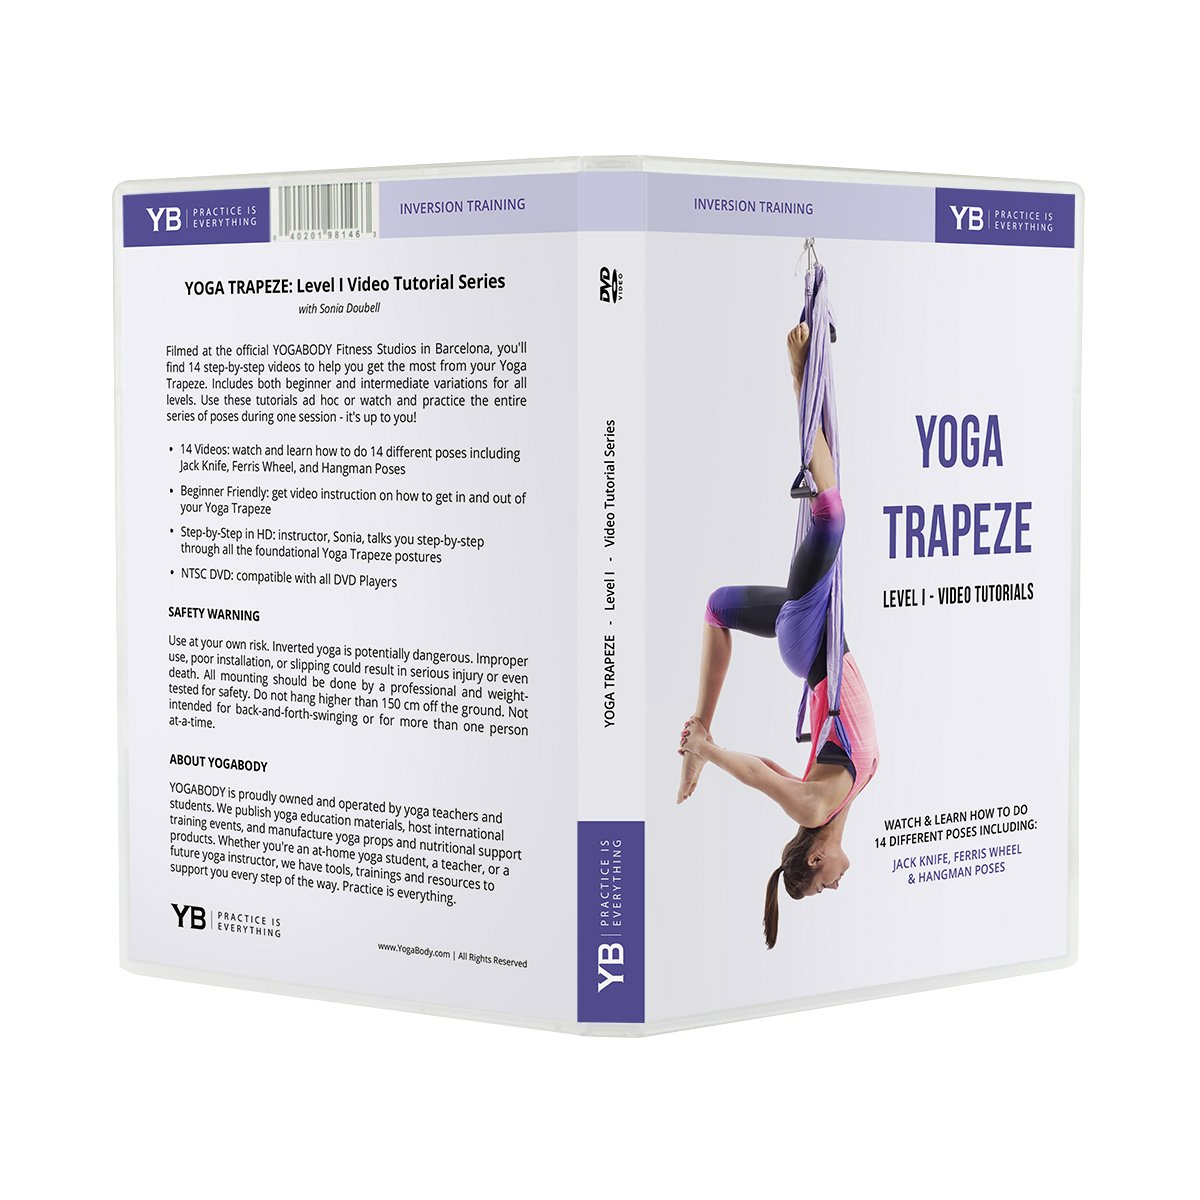 Amazon.com : YOGABODY Yoga Trapeze [Official] Video ...